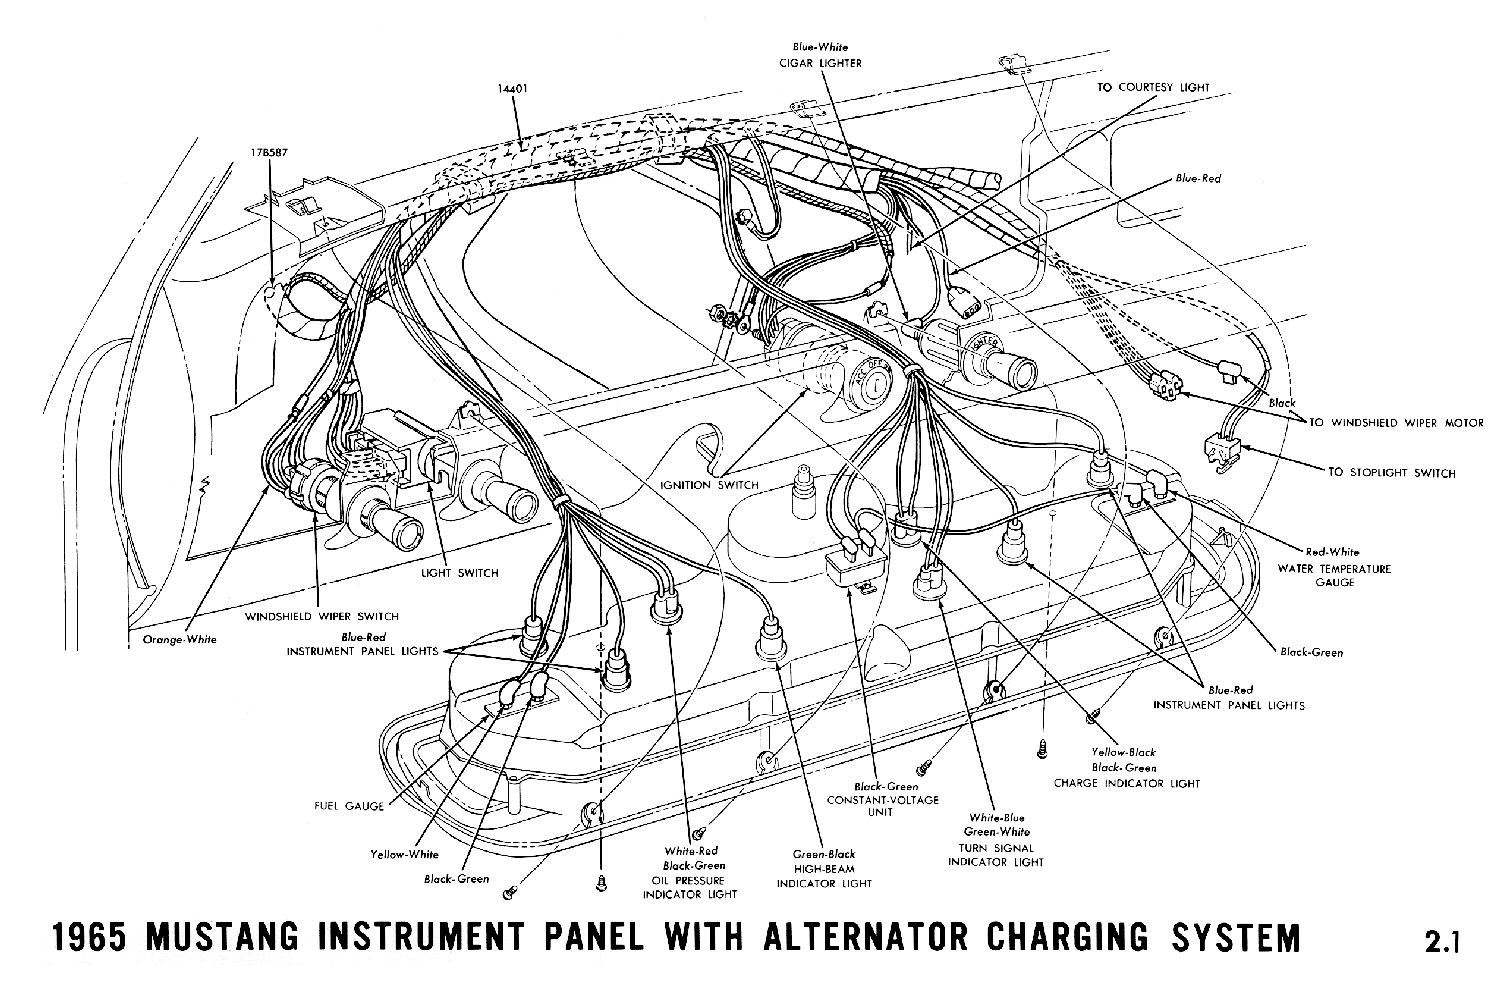 1965 Mustang Wiring Diagrams Average Joe Restoration Alternator Fuse Diagram 1965a